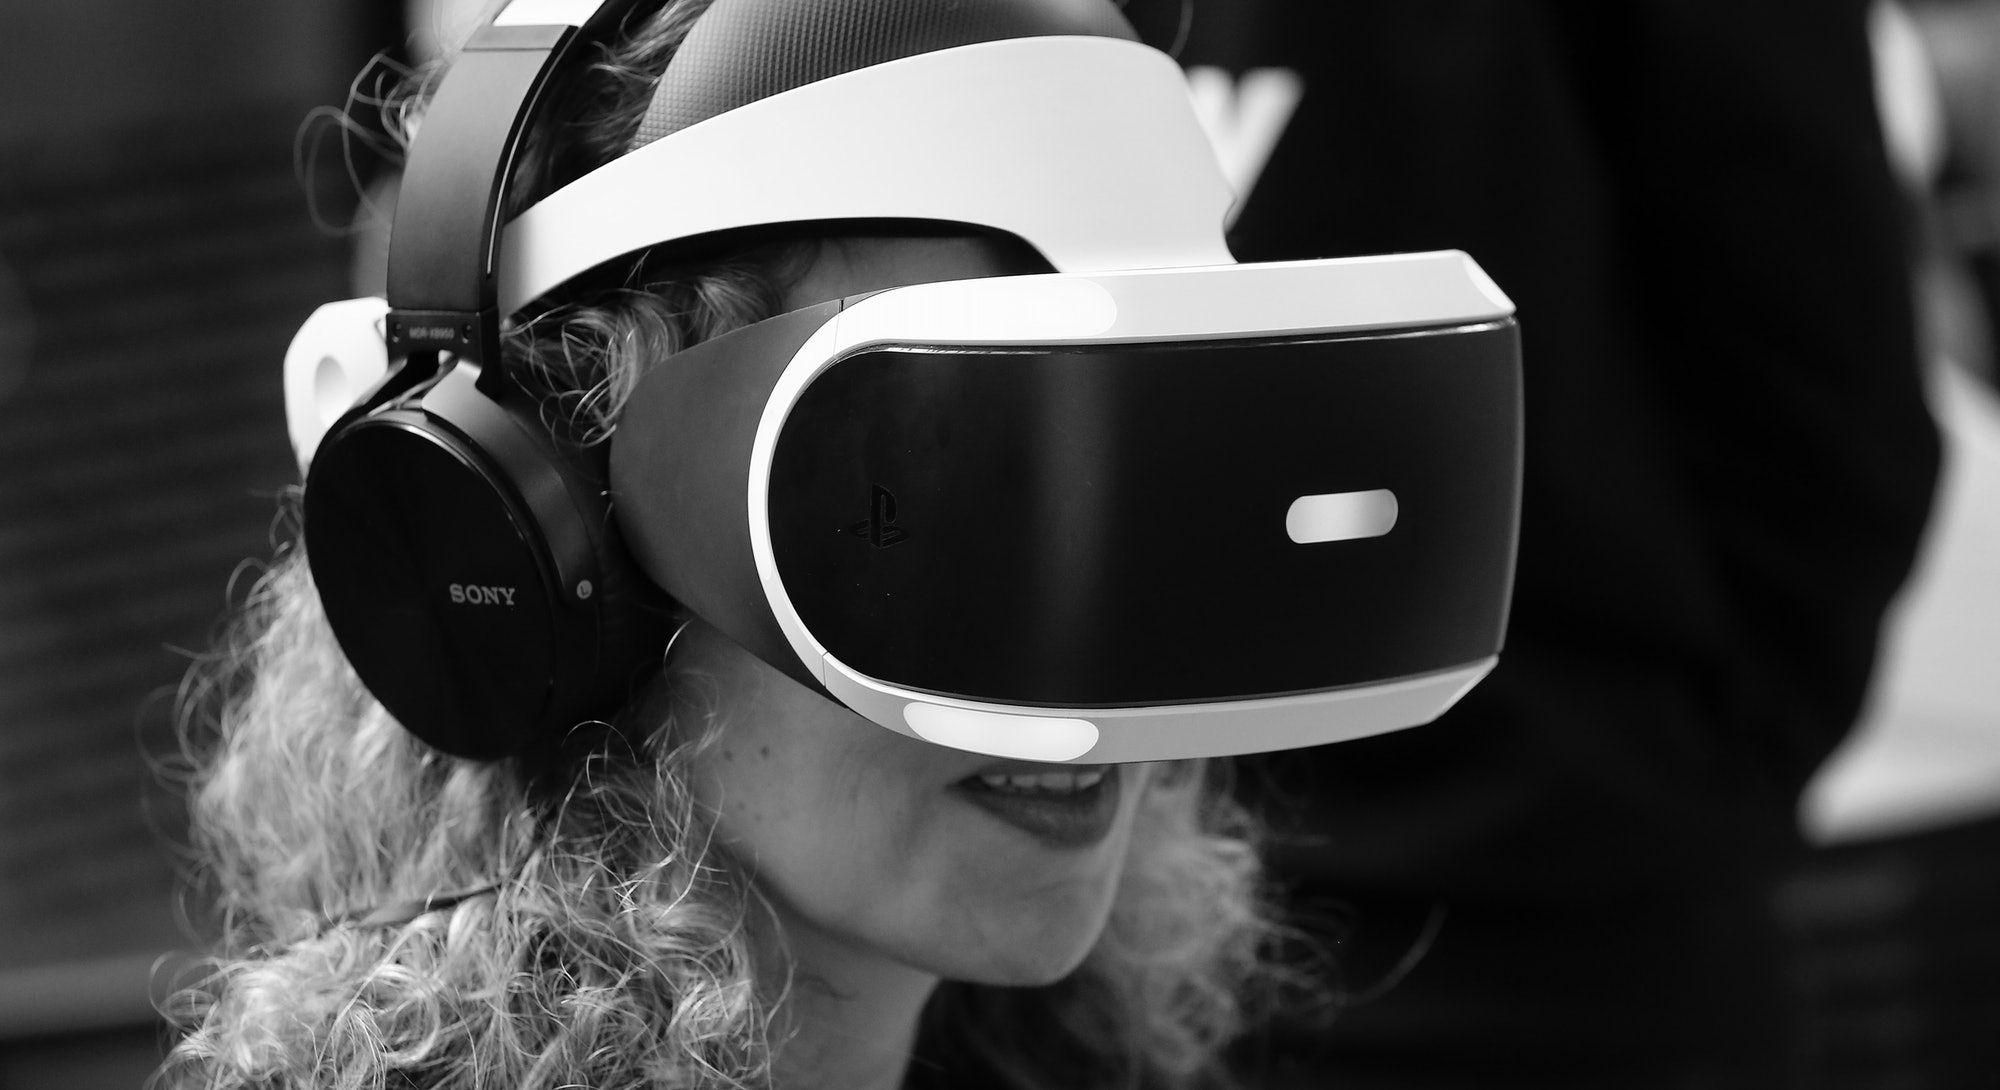 """PARIS, FRANCE - FEBRUARY 24:  A woman plays a video game with a virtual reality head-mounted headset 'Sony PlayStation VR' developed by Sony Interactive Entertainment during the show """"Virtuality Paris 2017"""" on February 24, 2017 in Paris, France. The first edition of Virtuality Paris, the virtual reality fair, will be held in Paris from 24 to 26 February 2017.  (Photo by Chesnot/Getty Images)"""